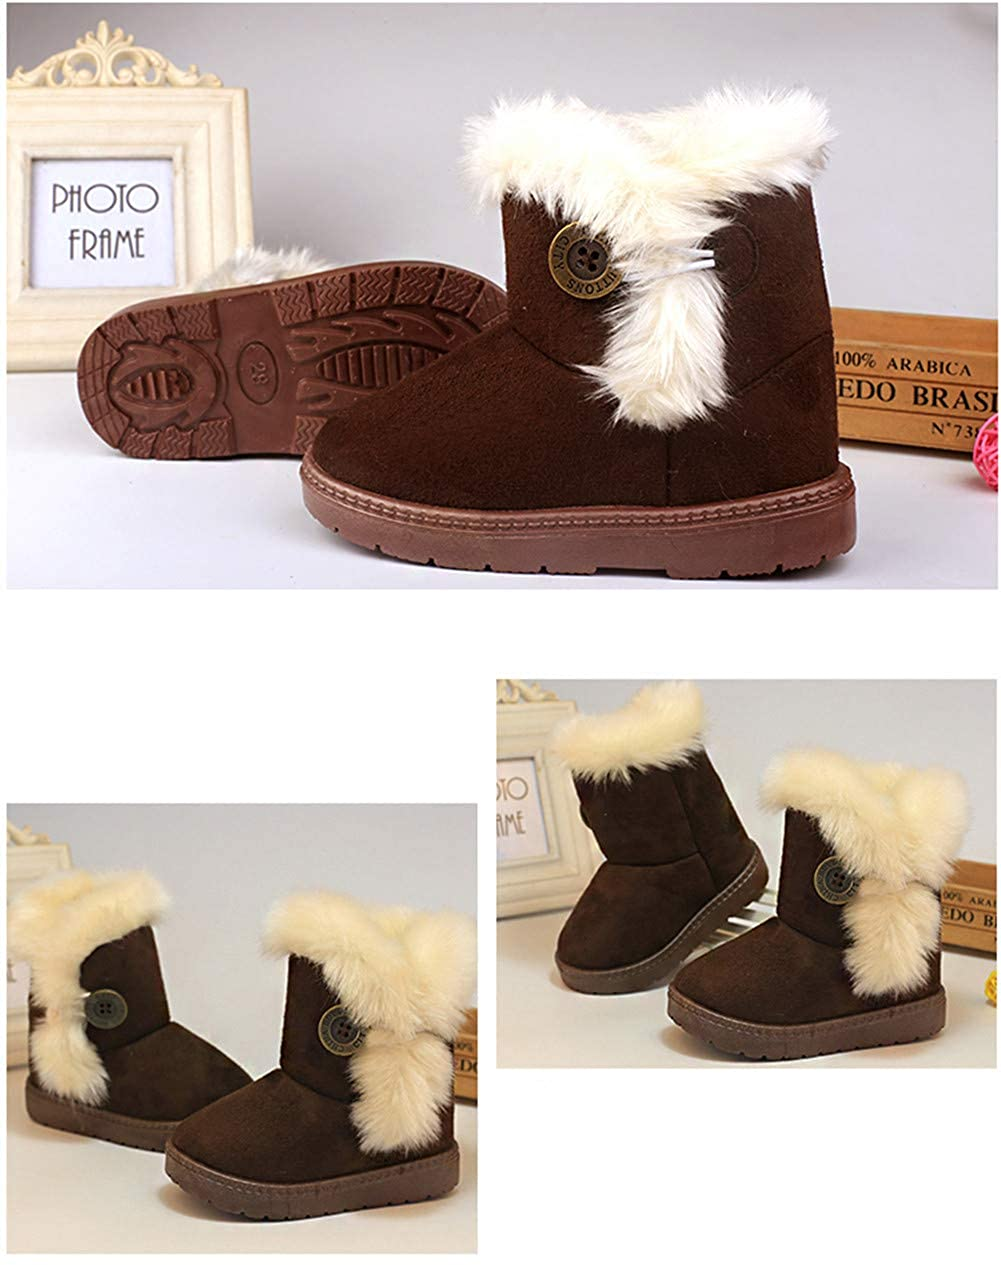 DoMii Baby Toddler Girls Winter Snow Boots Fashion Fur Lined Outdoor Boots Anti-Slip Crib Shoes